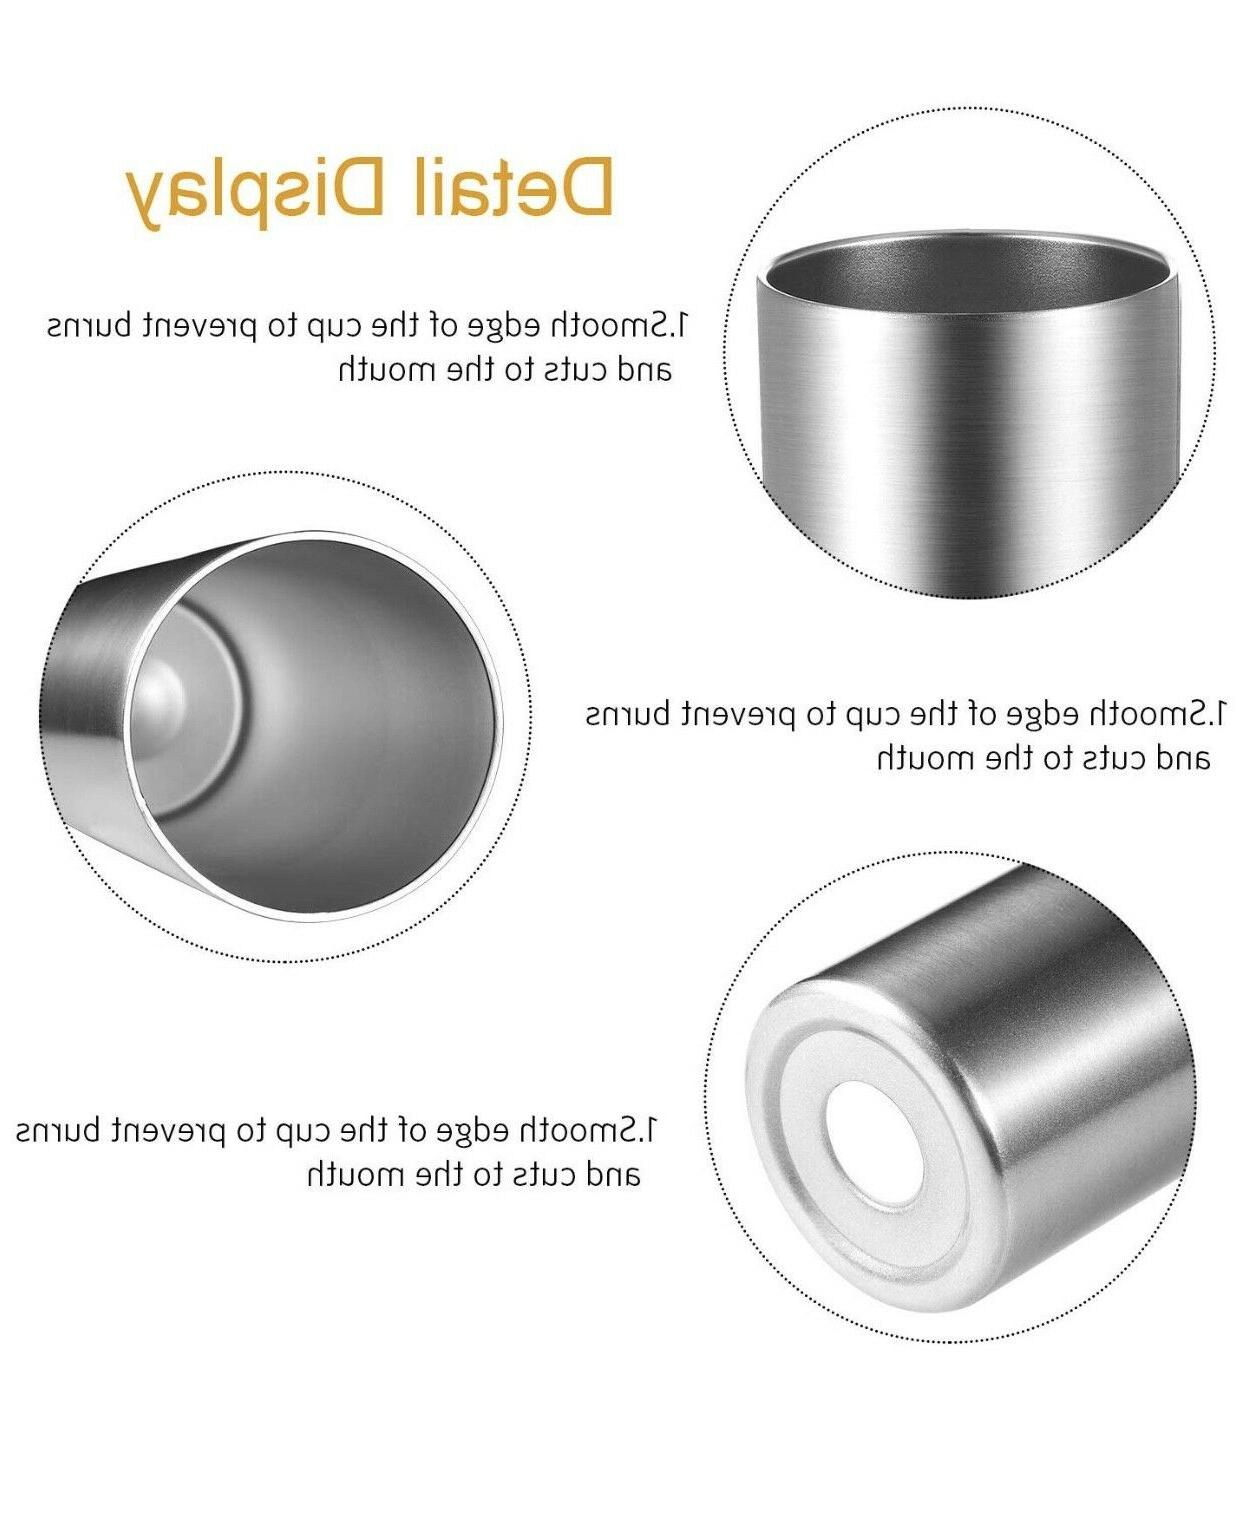 Stainless steel skinny tumbler double wall with and